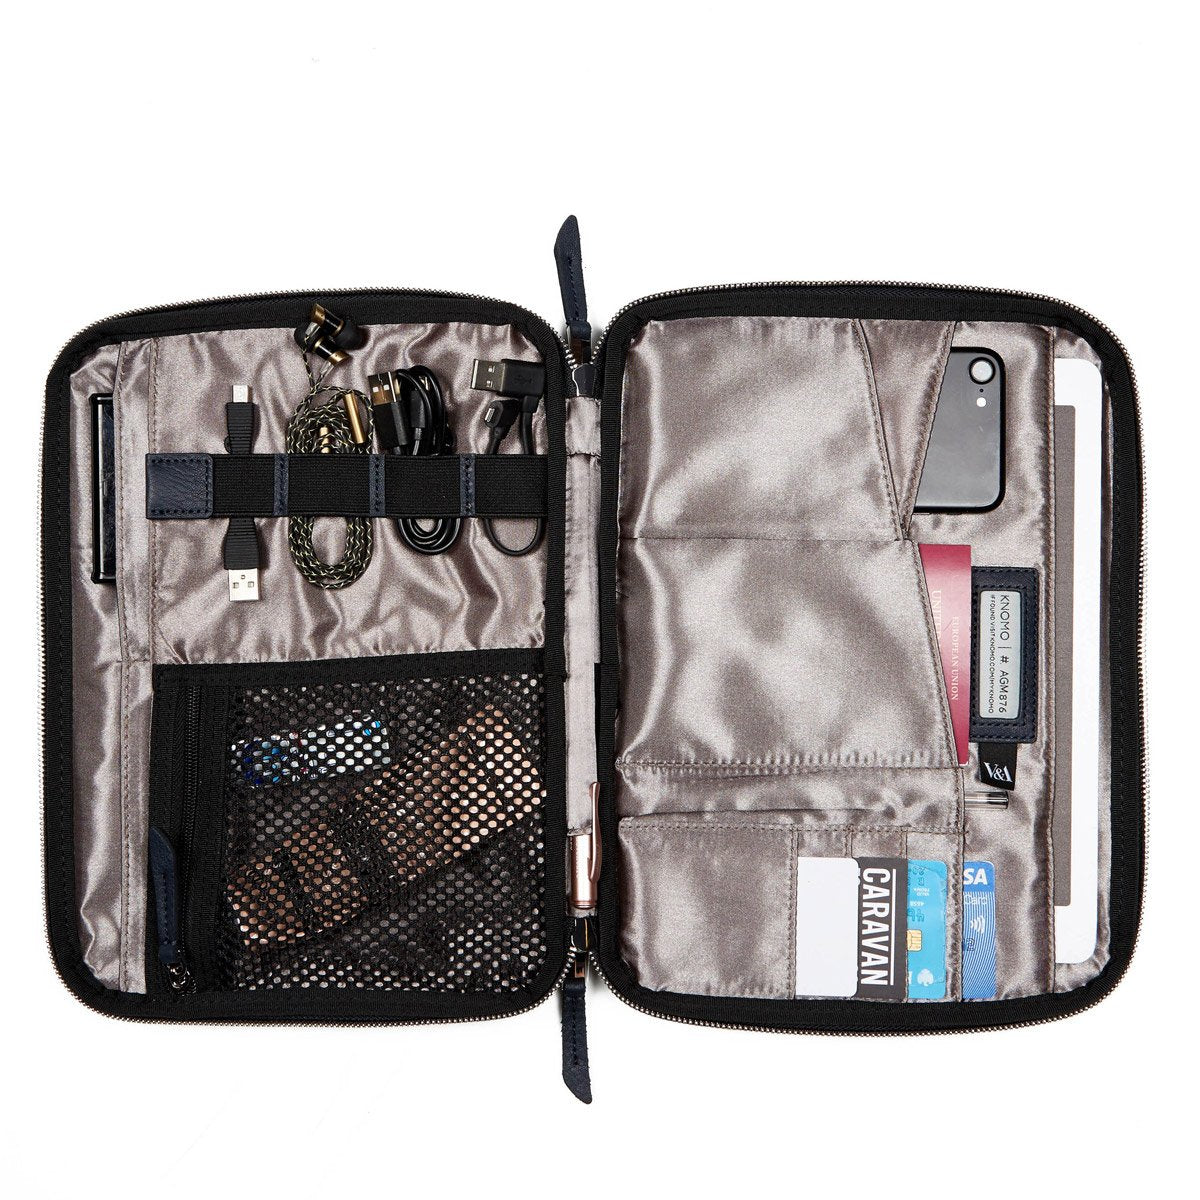 "Mayfair Knomad Organiser - 10.5"" Knomad Organiser - 10.5"" (V&A Exclusive) -  10.5""  